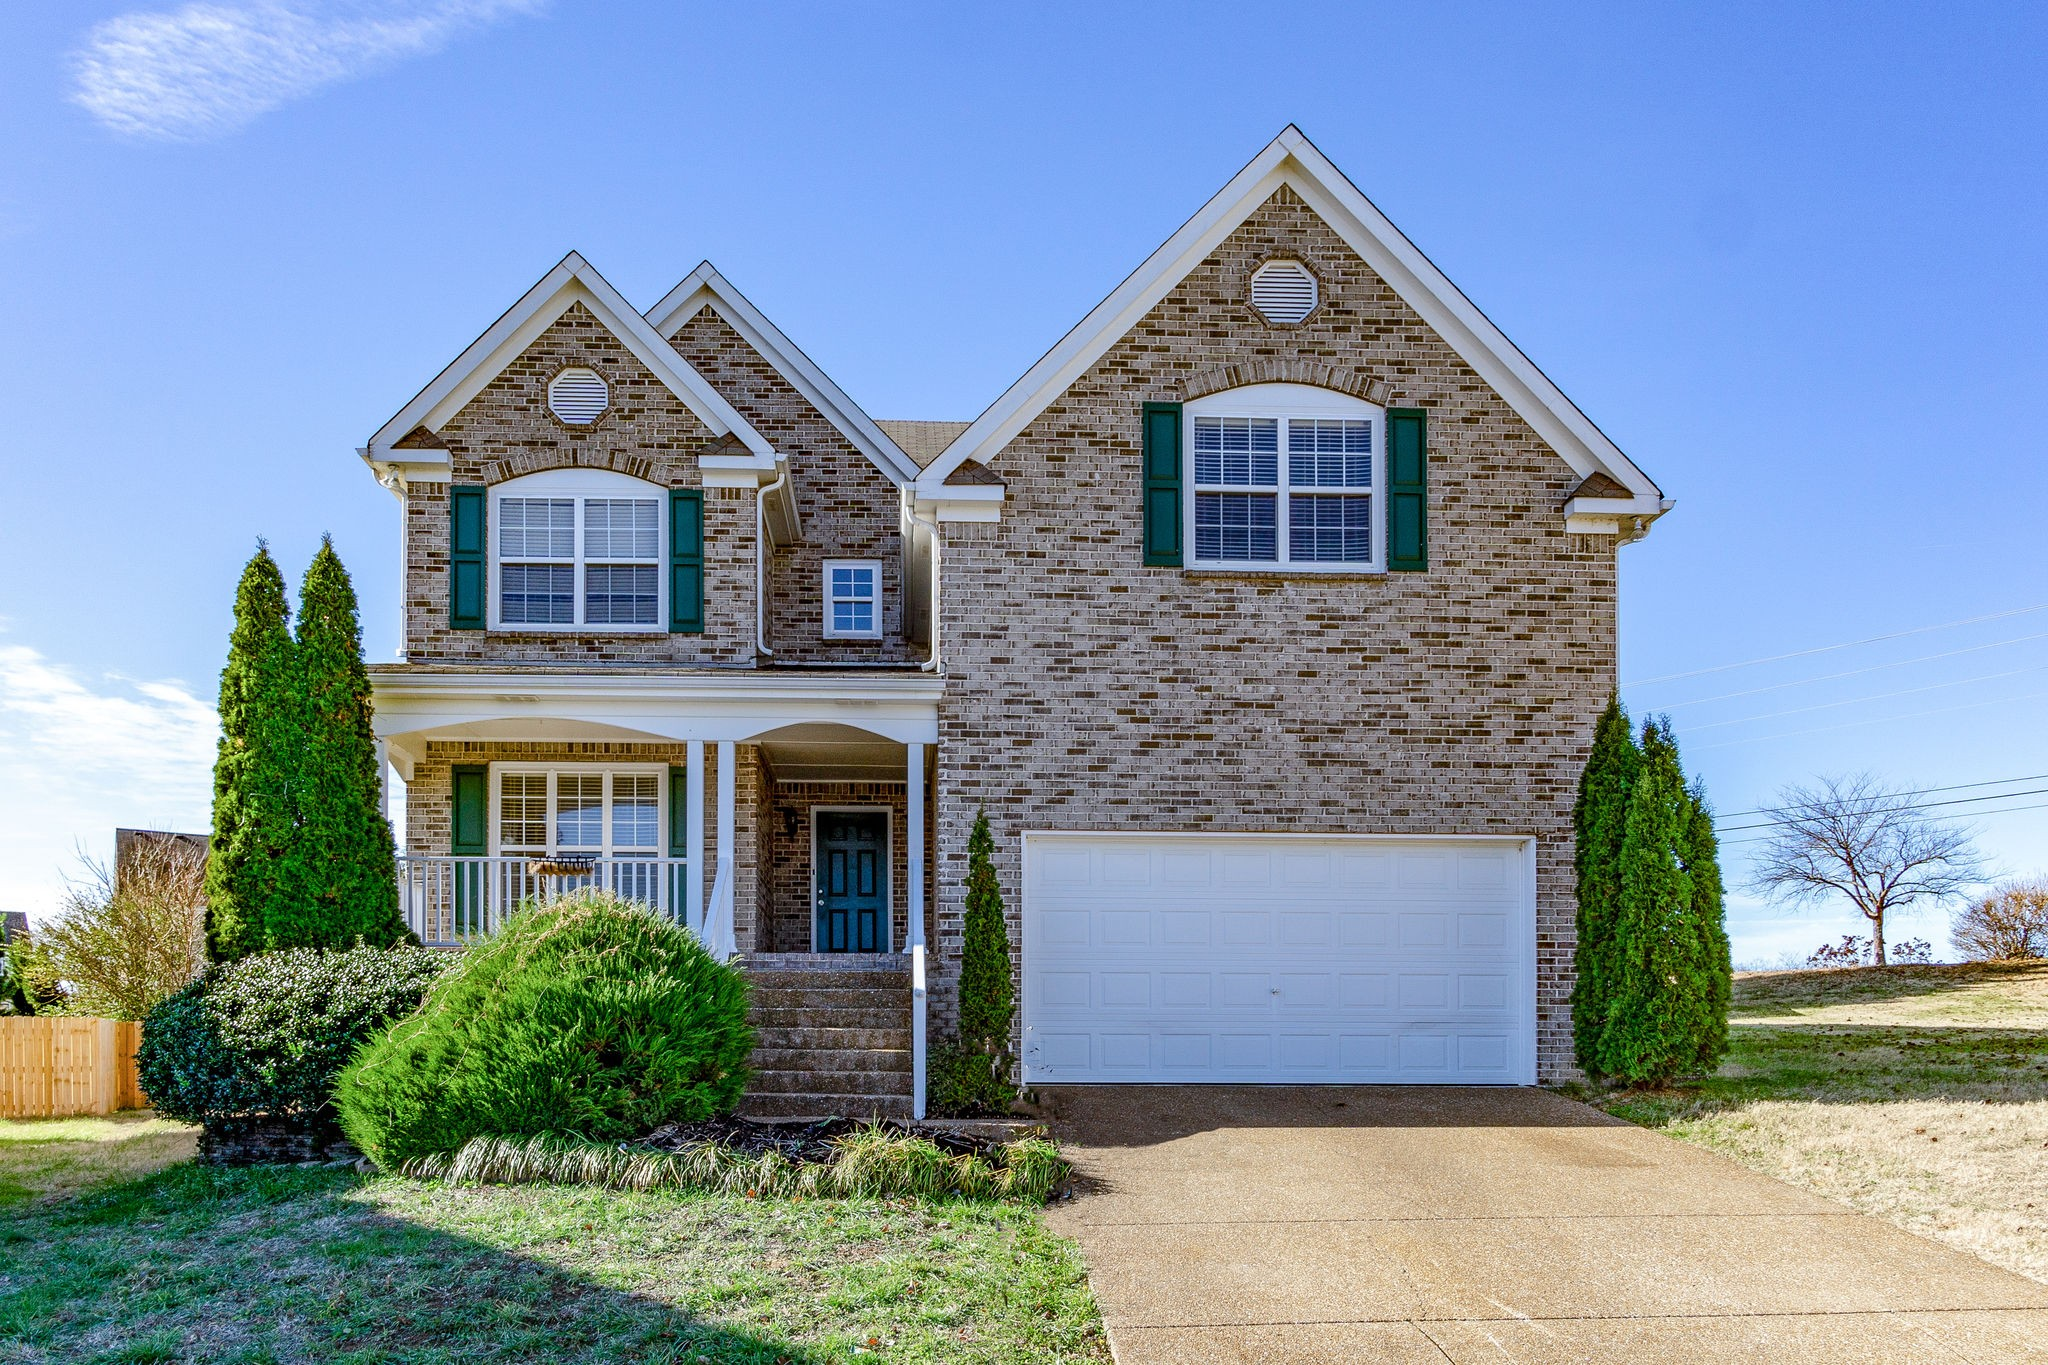 6009 Romain Ct, Spring Hill, TN 37174 - Spring Hill, TN real estate listing